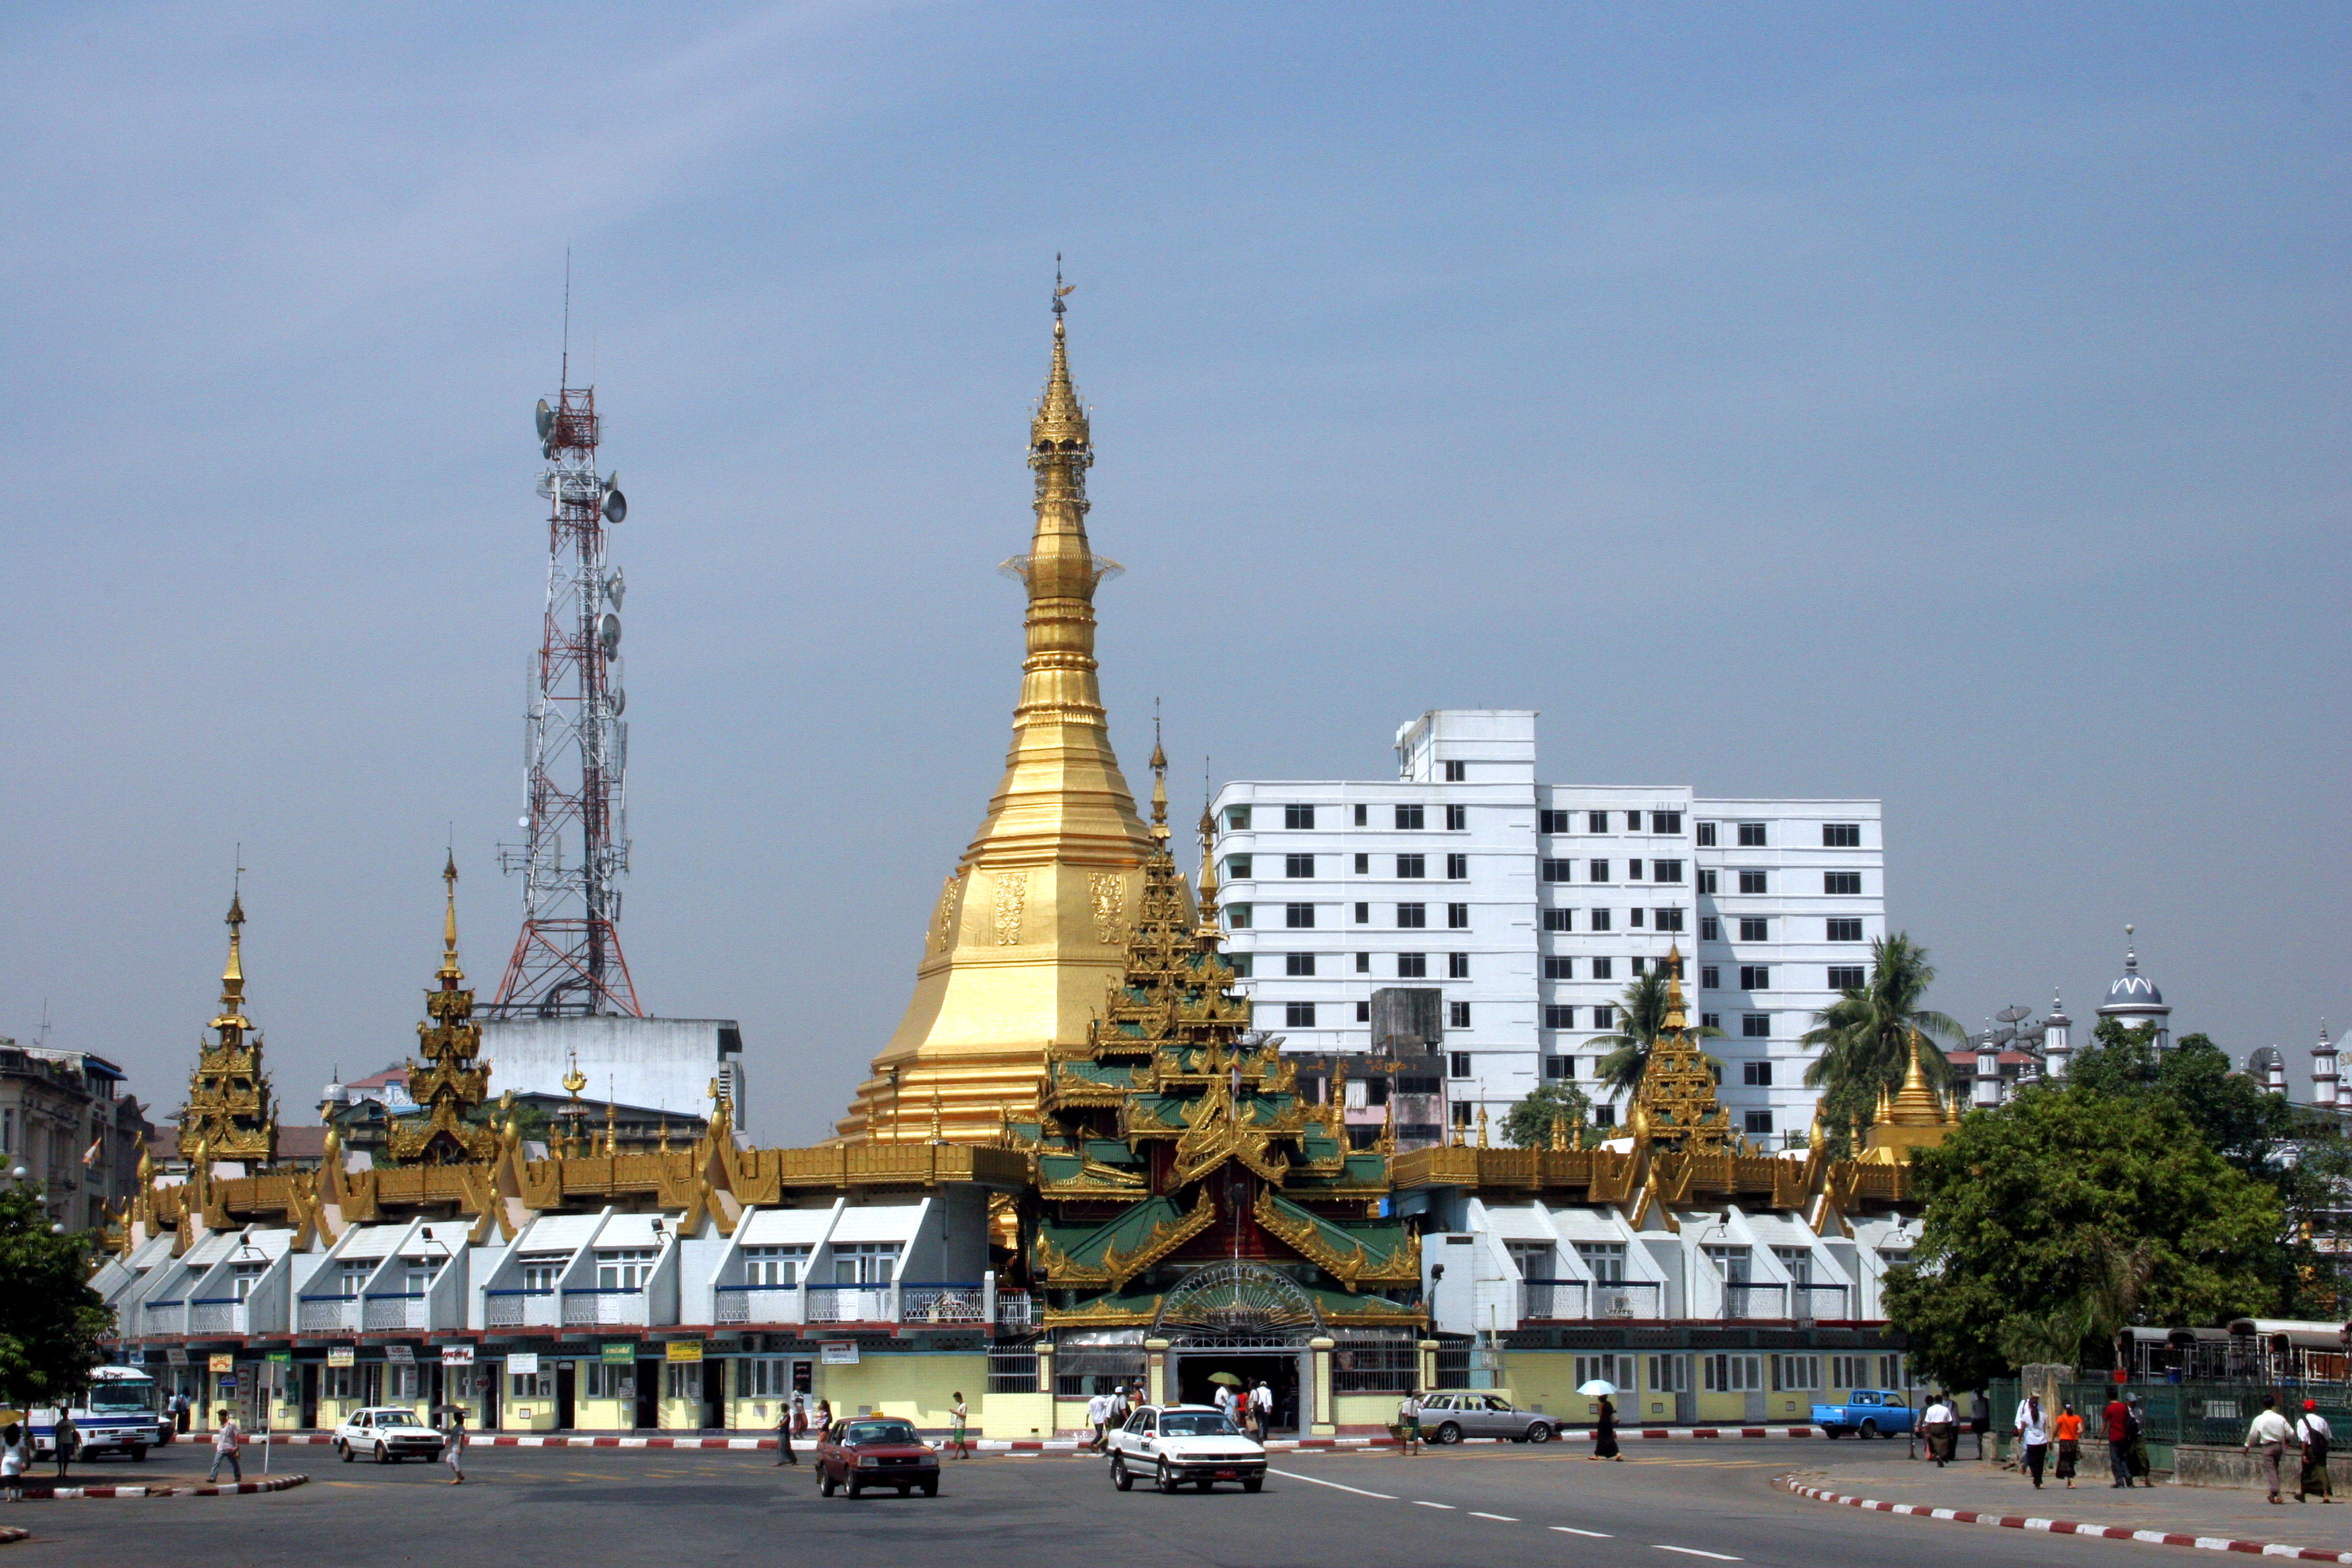 Sule Pagoda Yangon Burma Wikipedia, the free encyclopedia